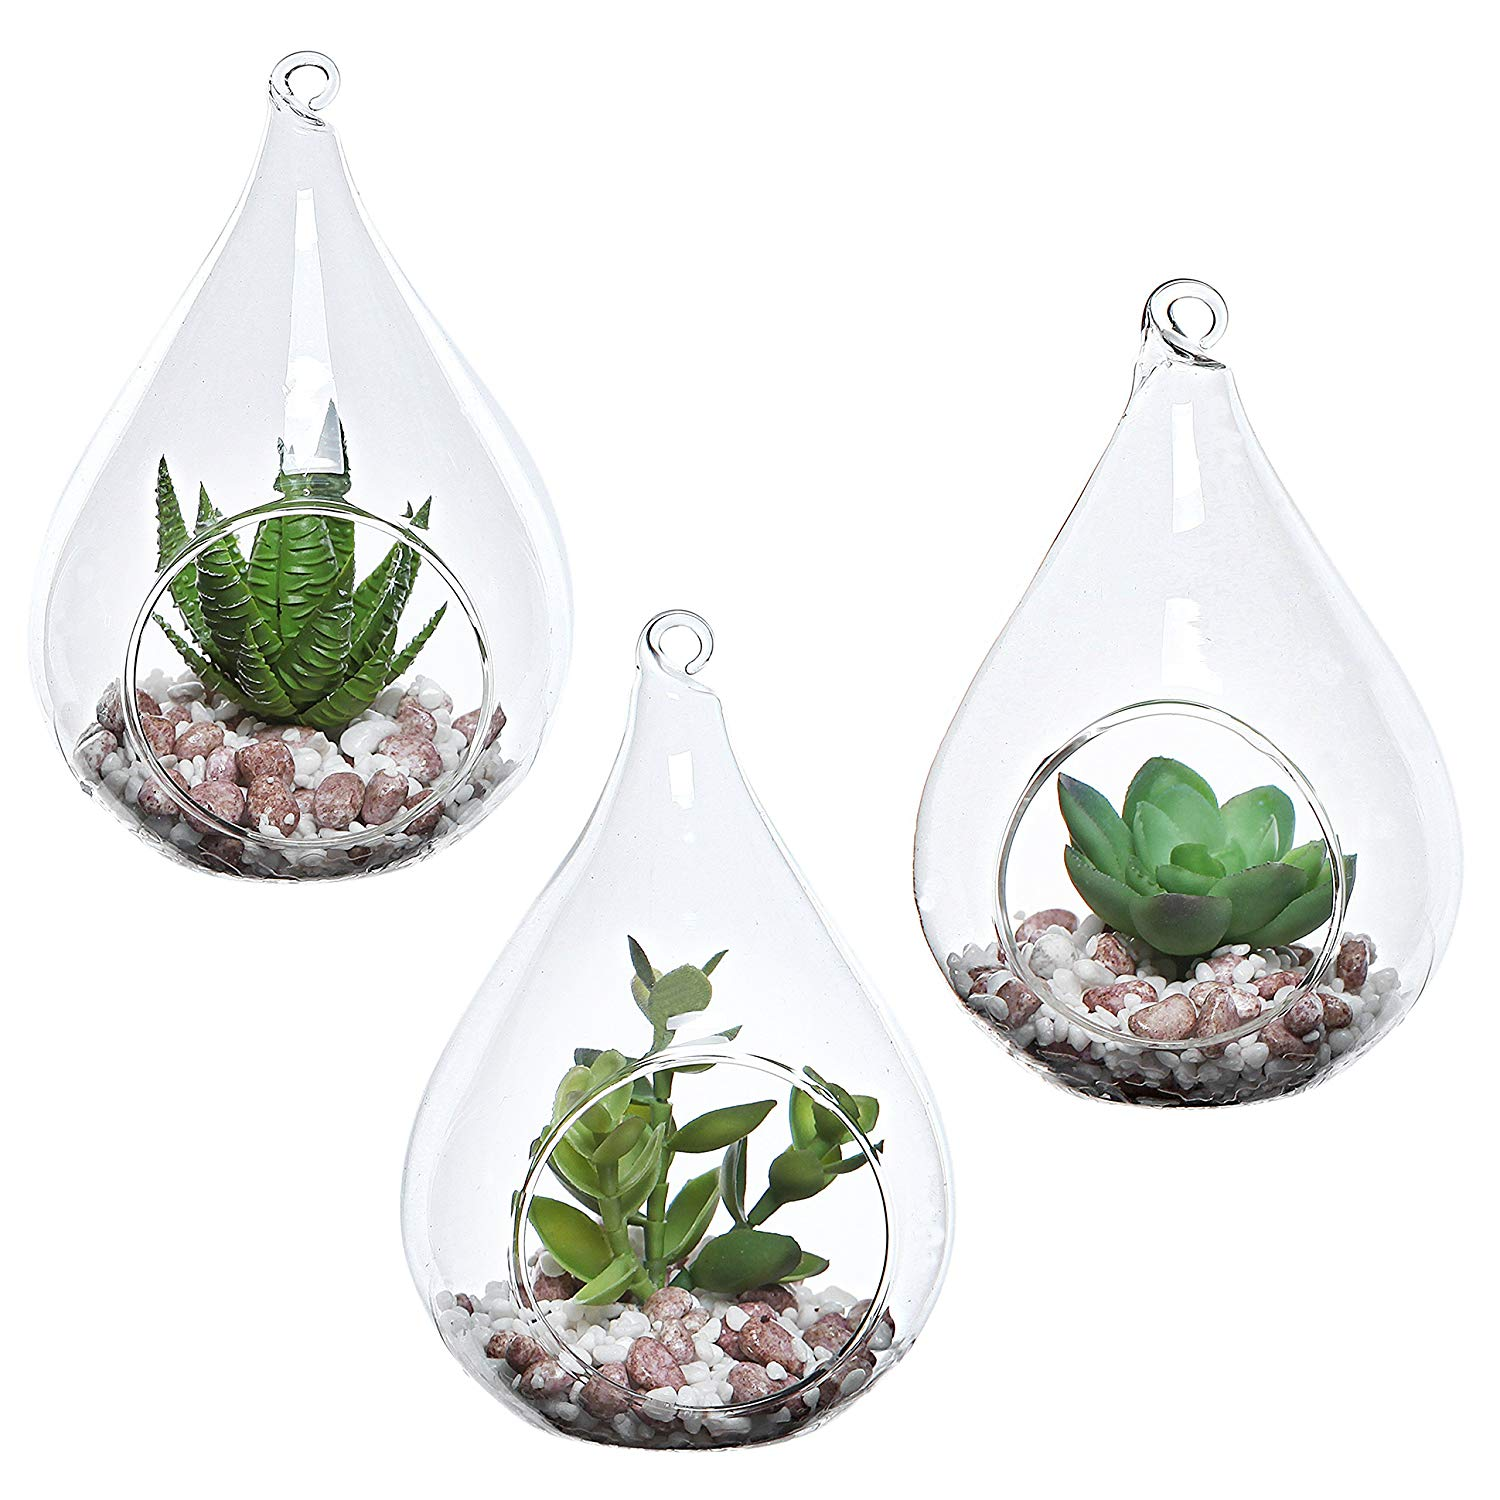 MyGift Set of 3 Teardrop Design Hanging Glass Faux Succulent Plant Terrarium Pots.